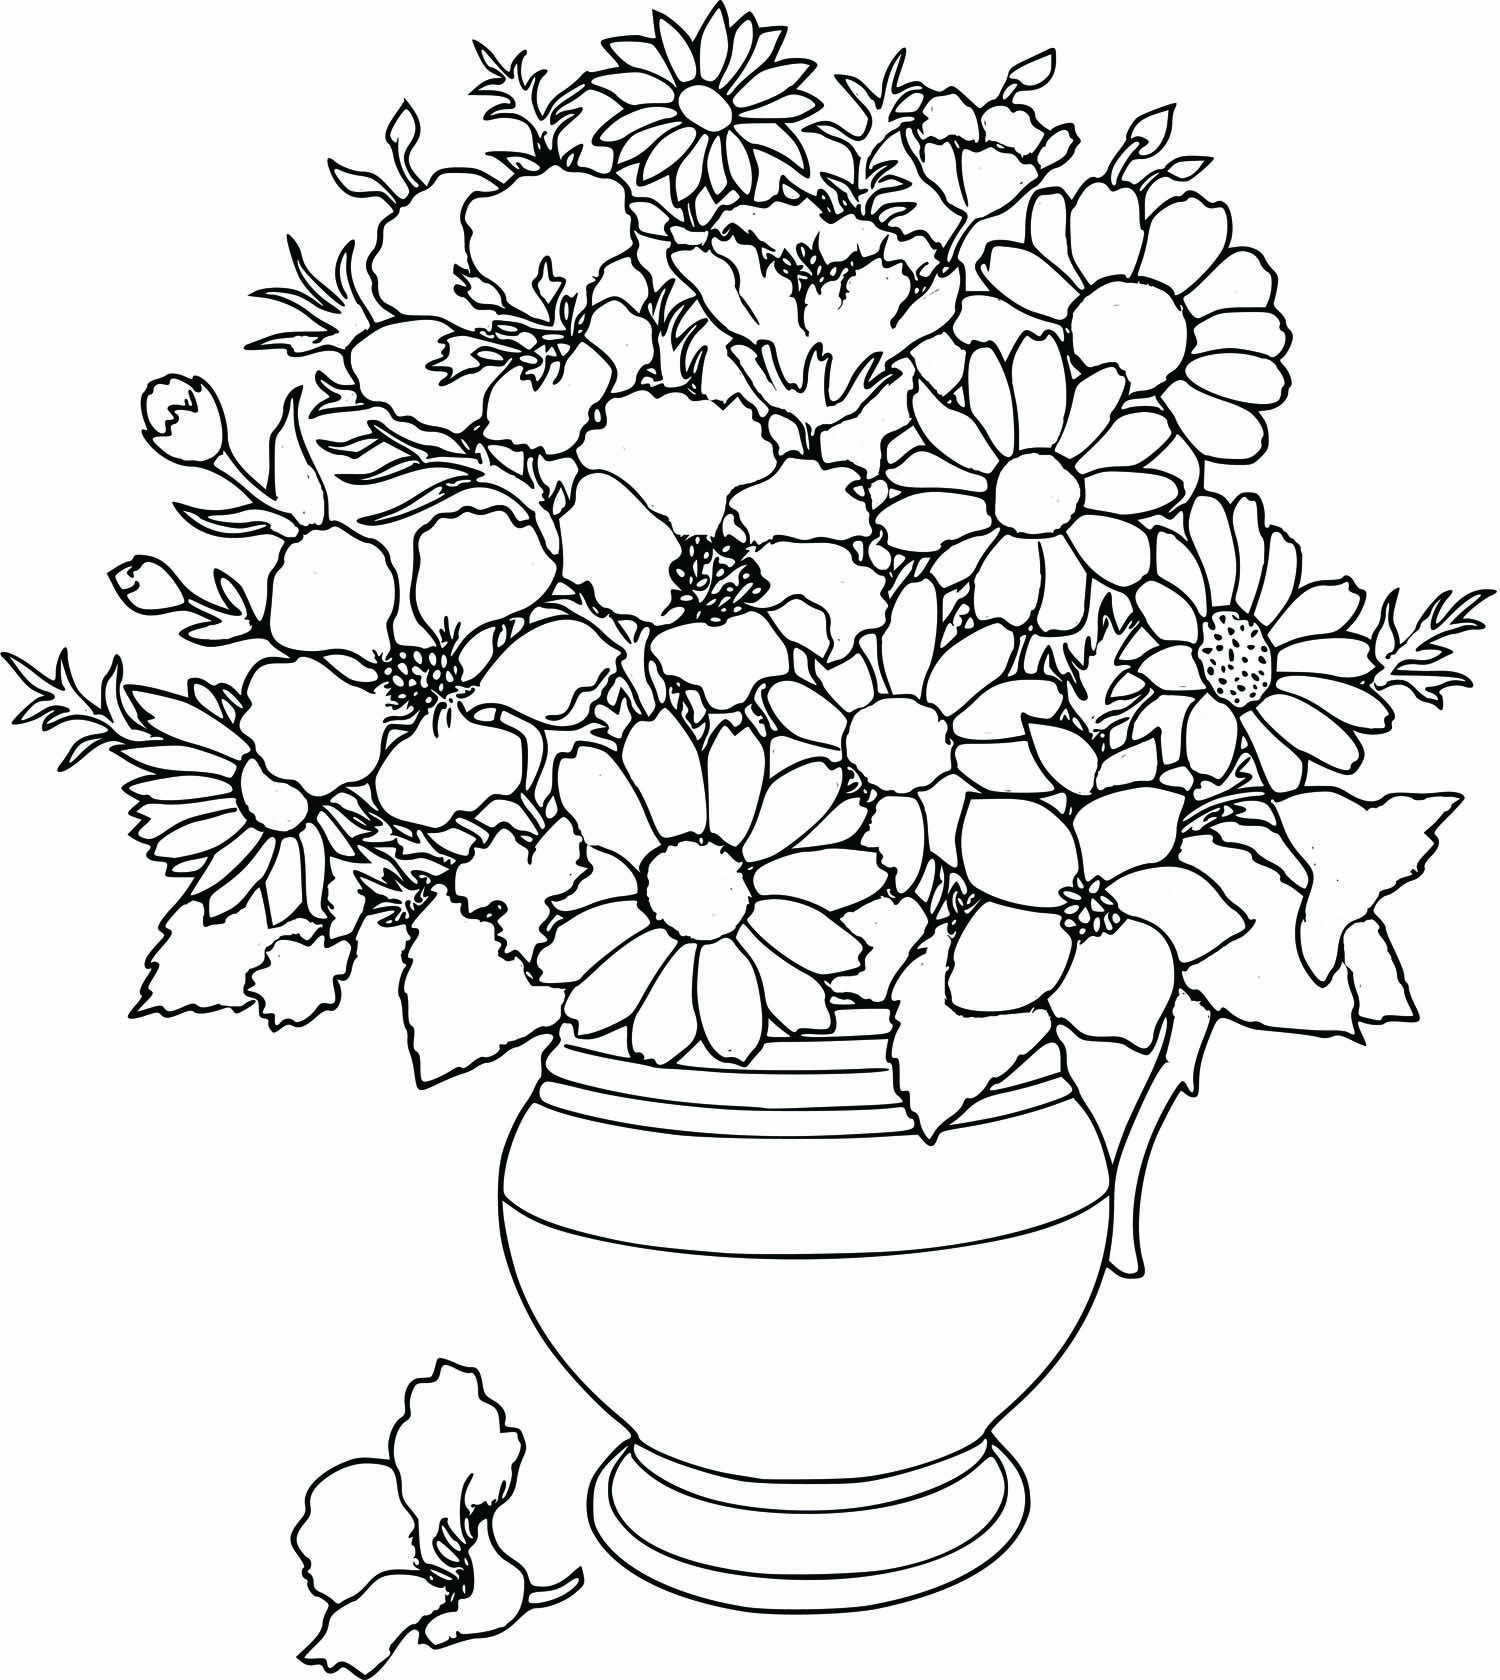 Mothers Day Flowers Coloring Pages With Images Flower